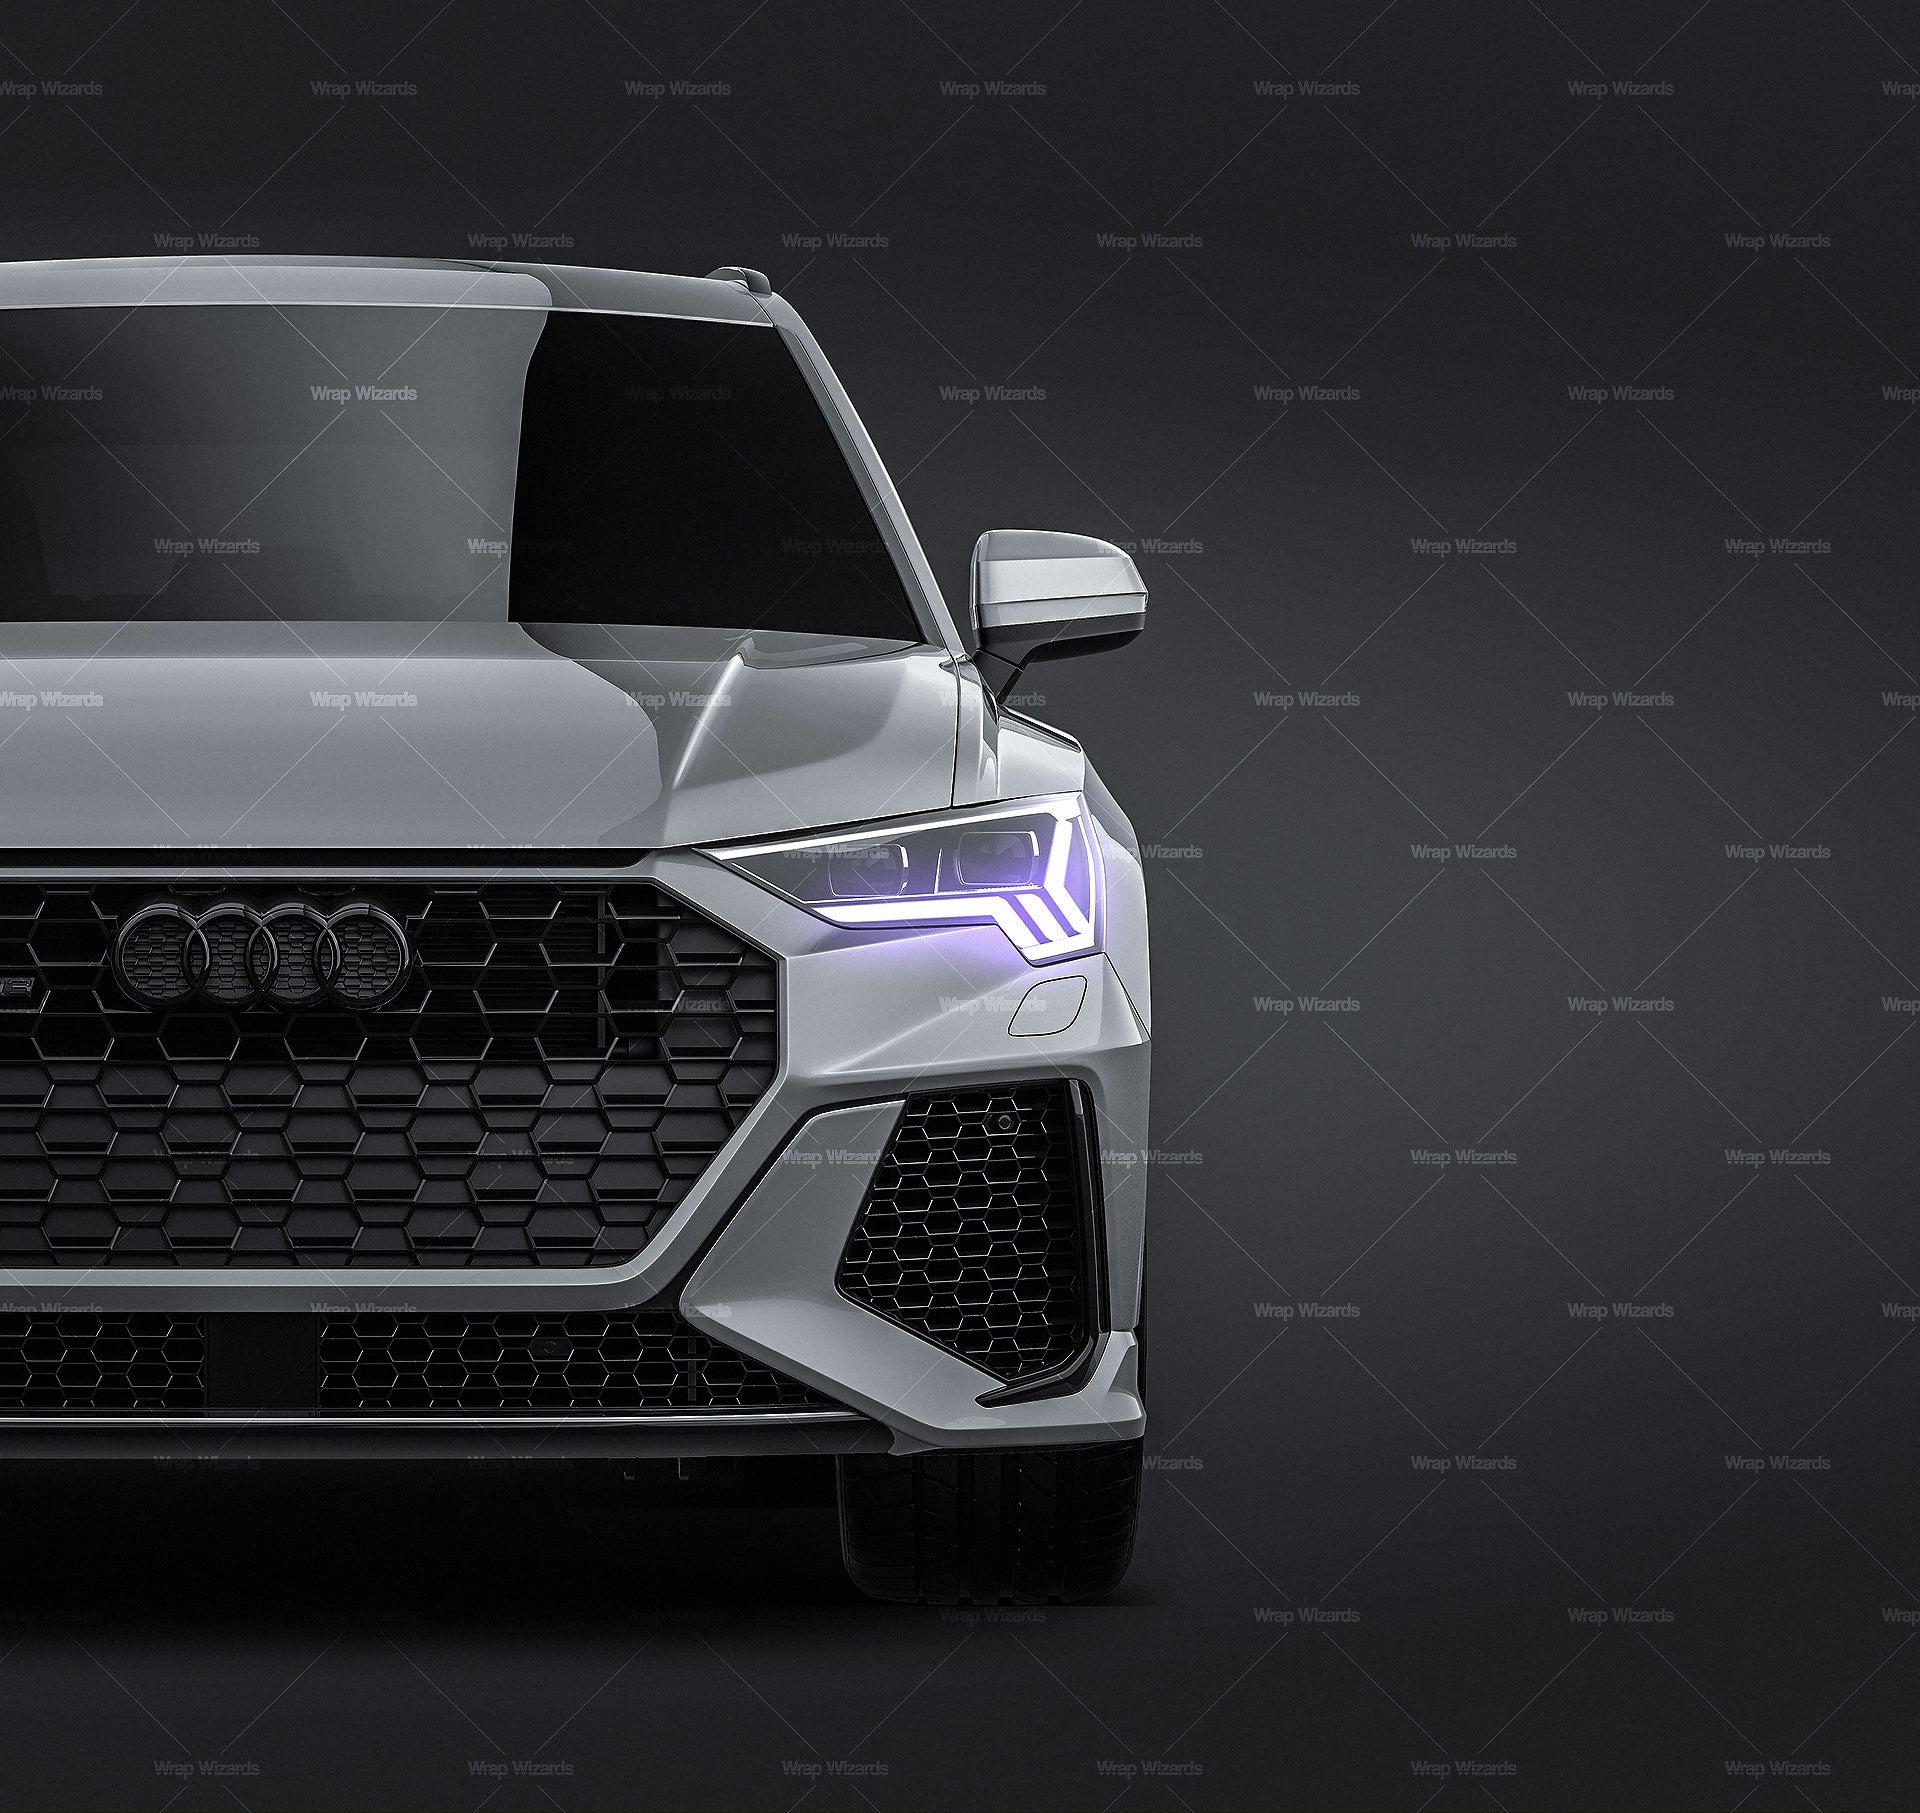 Audi RS Q3 2020 all sides Car Mockup Template.psd